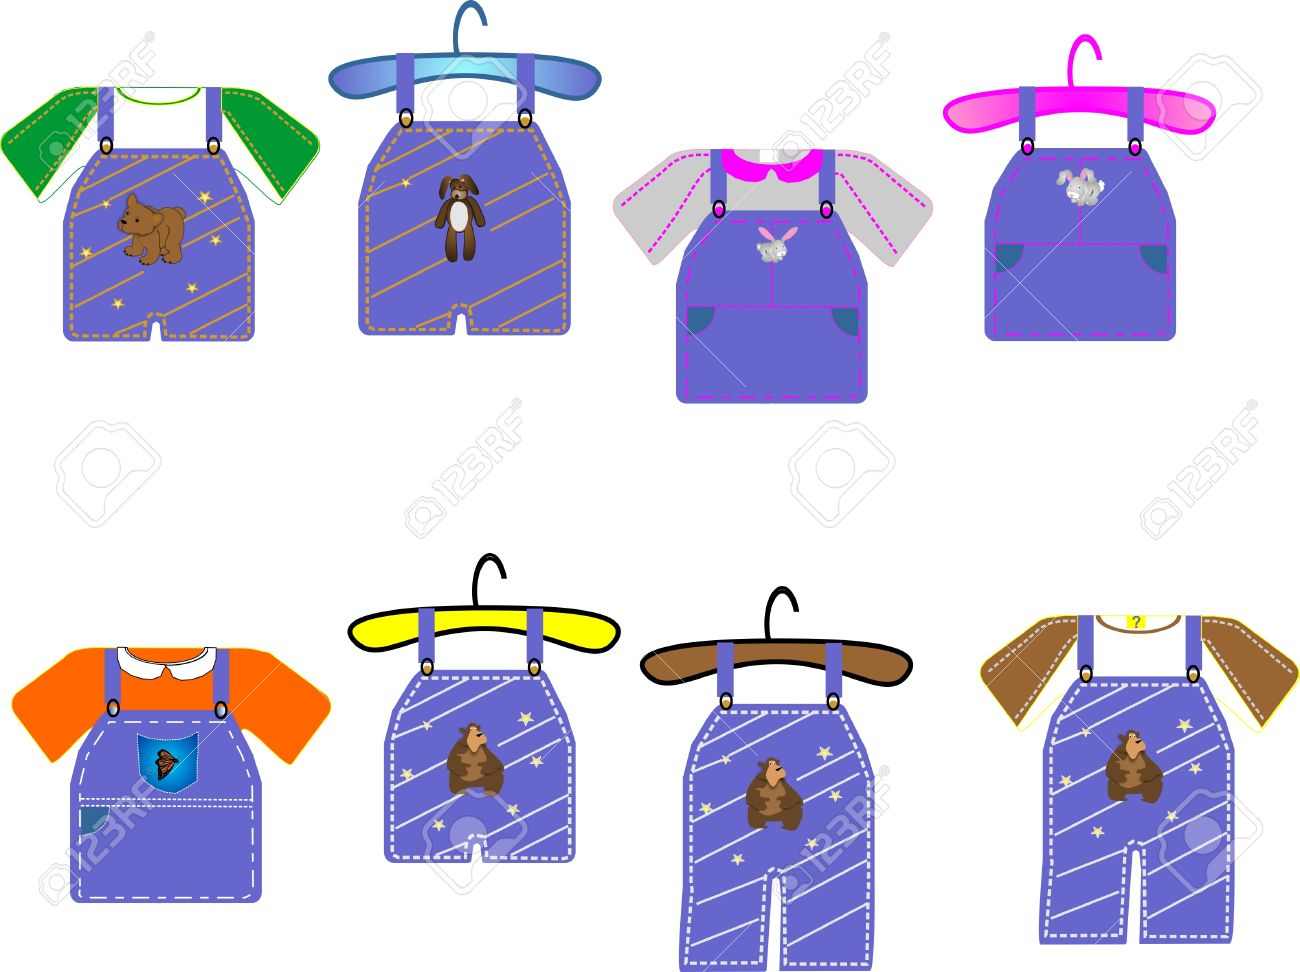 kids clothing for boys and girls great for cards clip art and rh 123rf com Girl Clip Art Clothes Clip Art Black and White Clothes